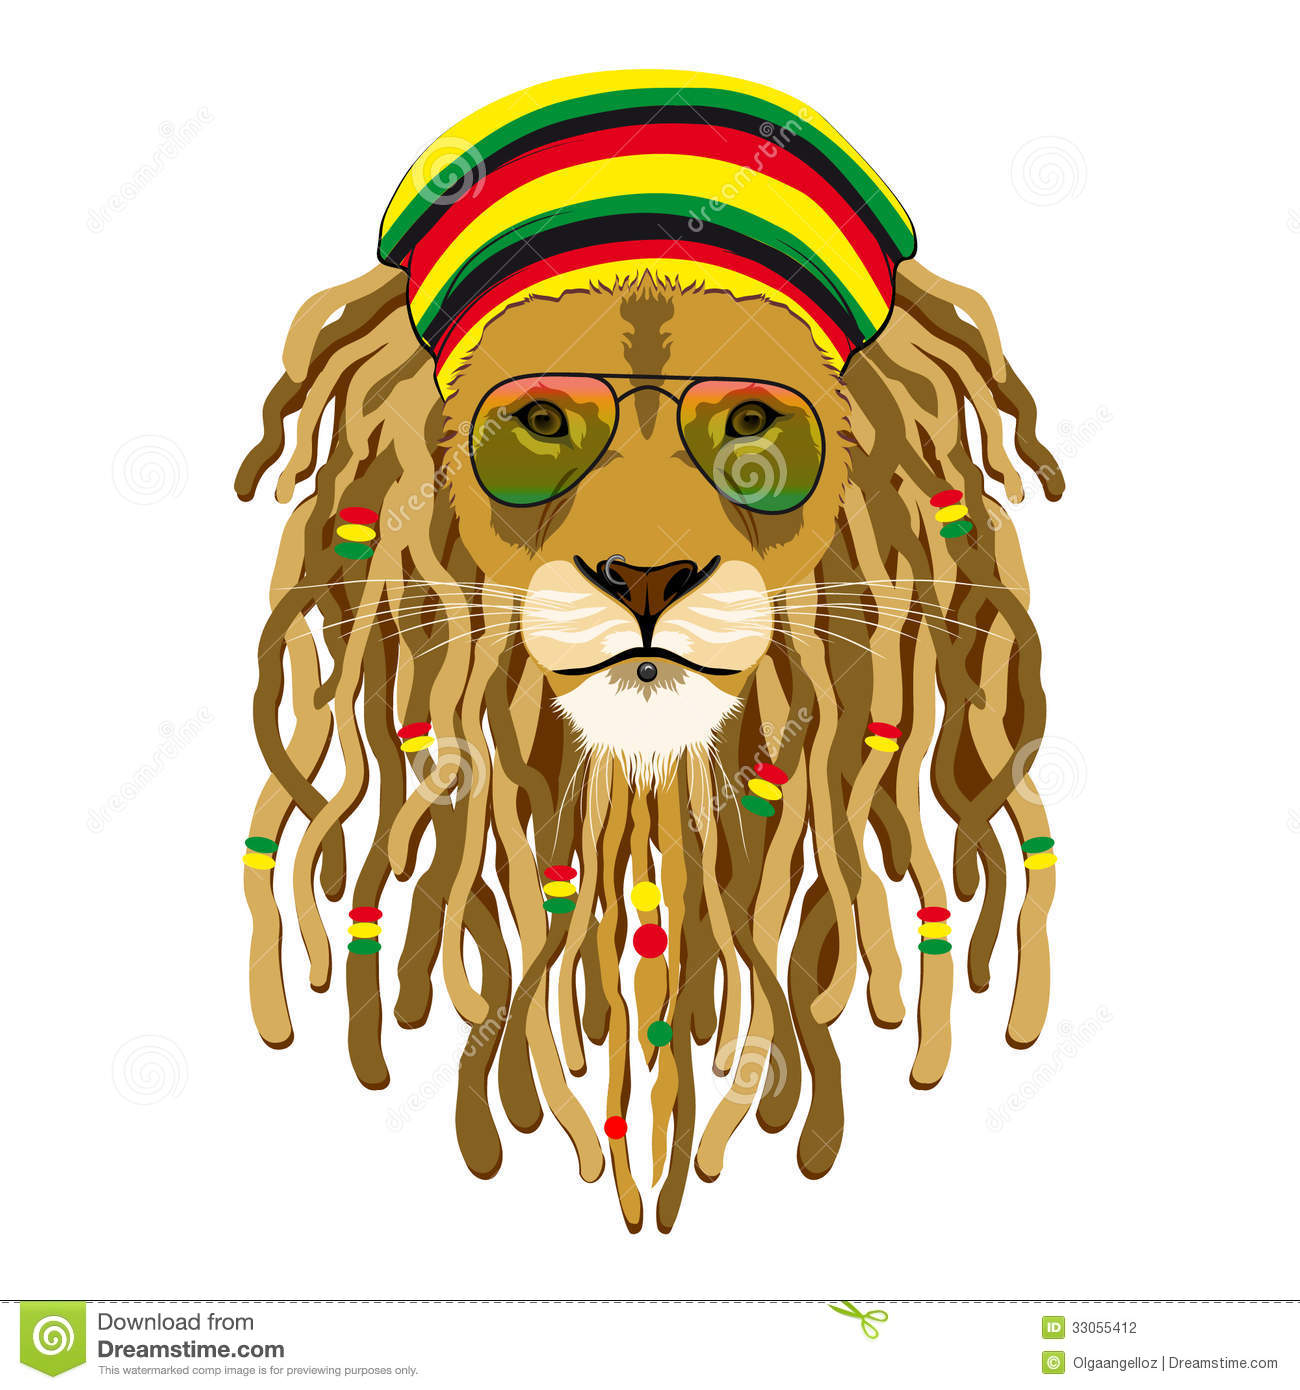 Rasta lion face sketch - photo#25